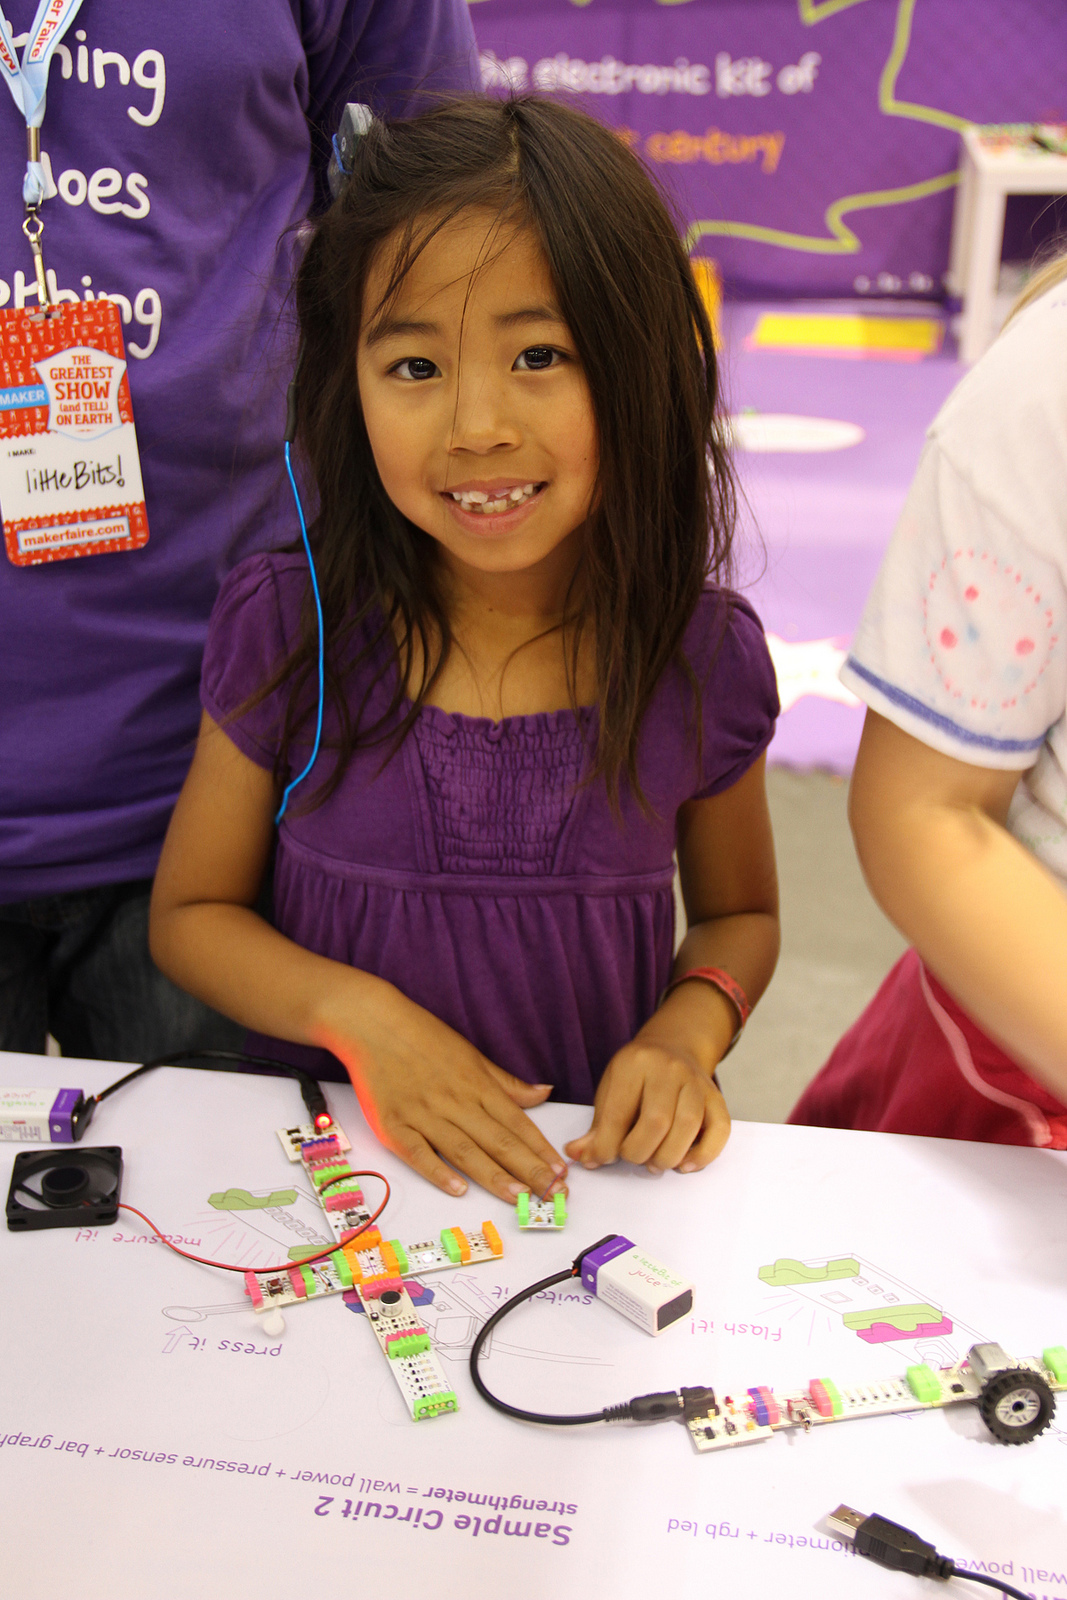 Little Bits Engage Their Minds Littlebits Kits Teach Beginning Circuitry To Kids Discount Image From Http Commonswikimediaorg Wiki File